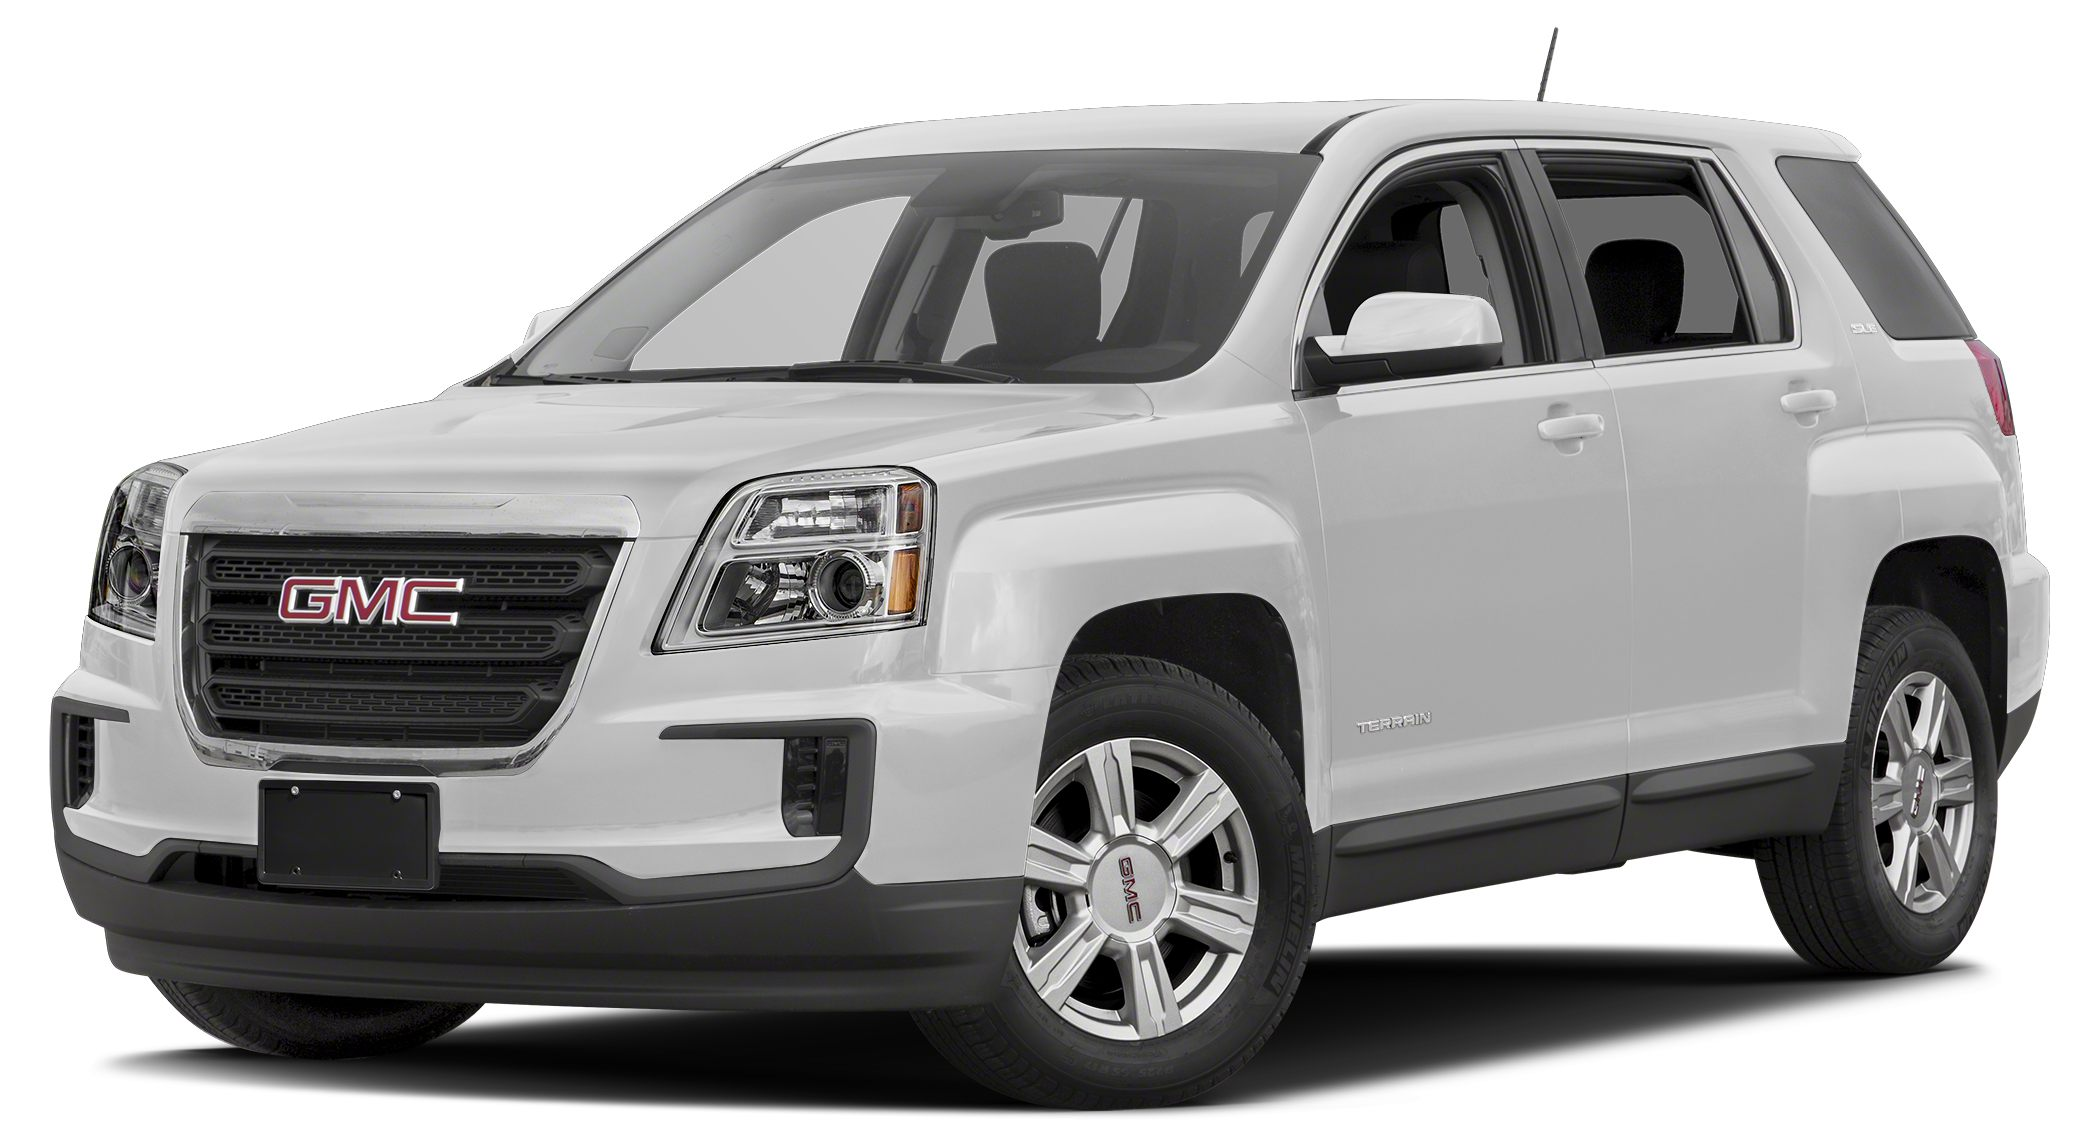 2016 GMC Terrain SLE-1 SLE trim EPA 32 MPG Hwy22 MPG City Back-Up Camera Aluminum Wheels iPod